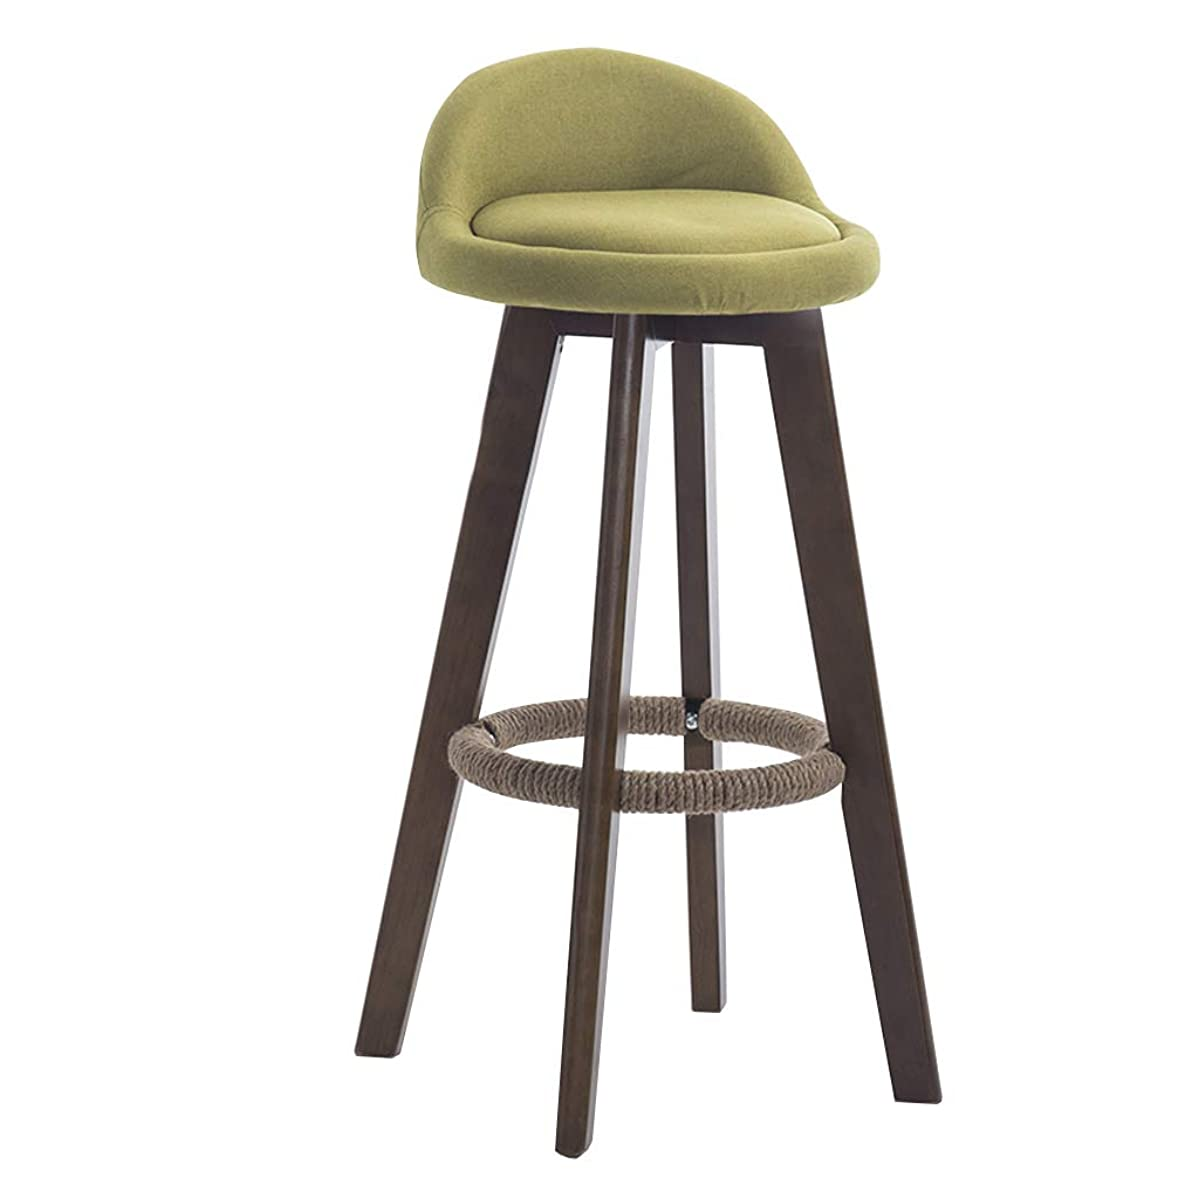 Footrest Wooden Bar Stool, 360° Rotation Bar Chair, Burlap Chair Low Back Footstool, Home Kitchen Breakfast Counter High Bench, 4 Colors 63cm/73cm/83cm (Color : Green, Size : 63cm)